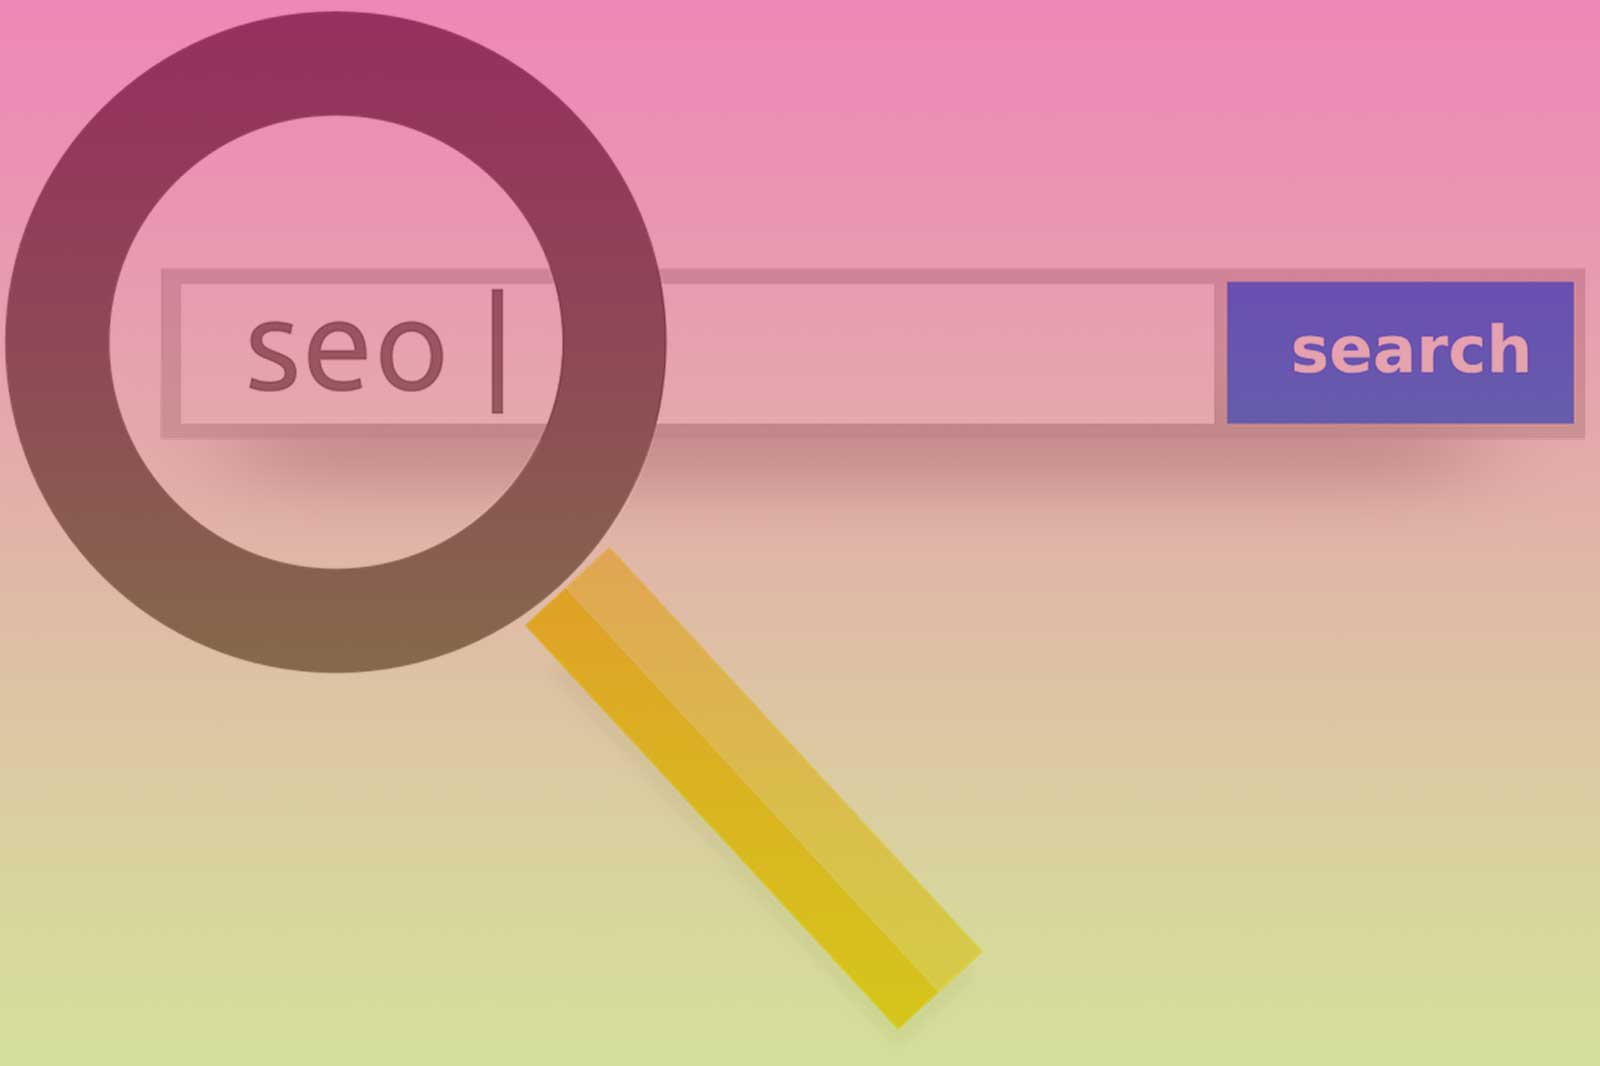 SEO for Digital Marketing: Technical SEO (Part 2)